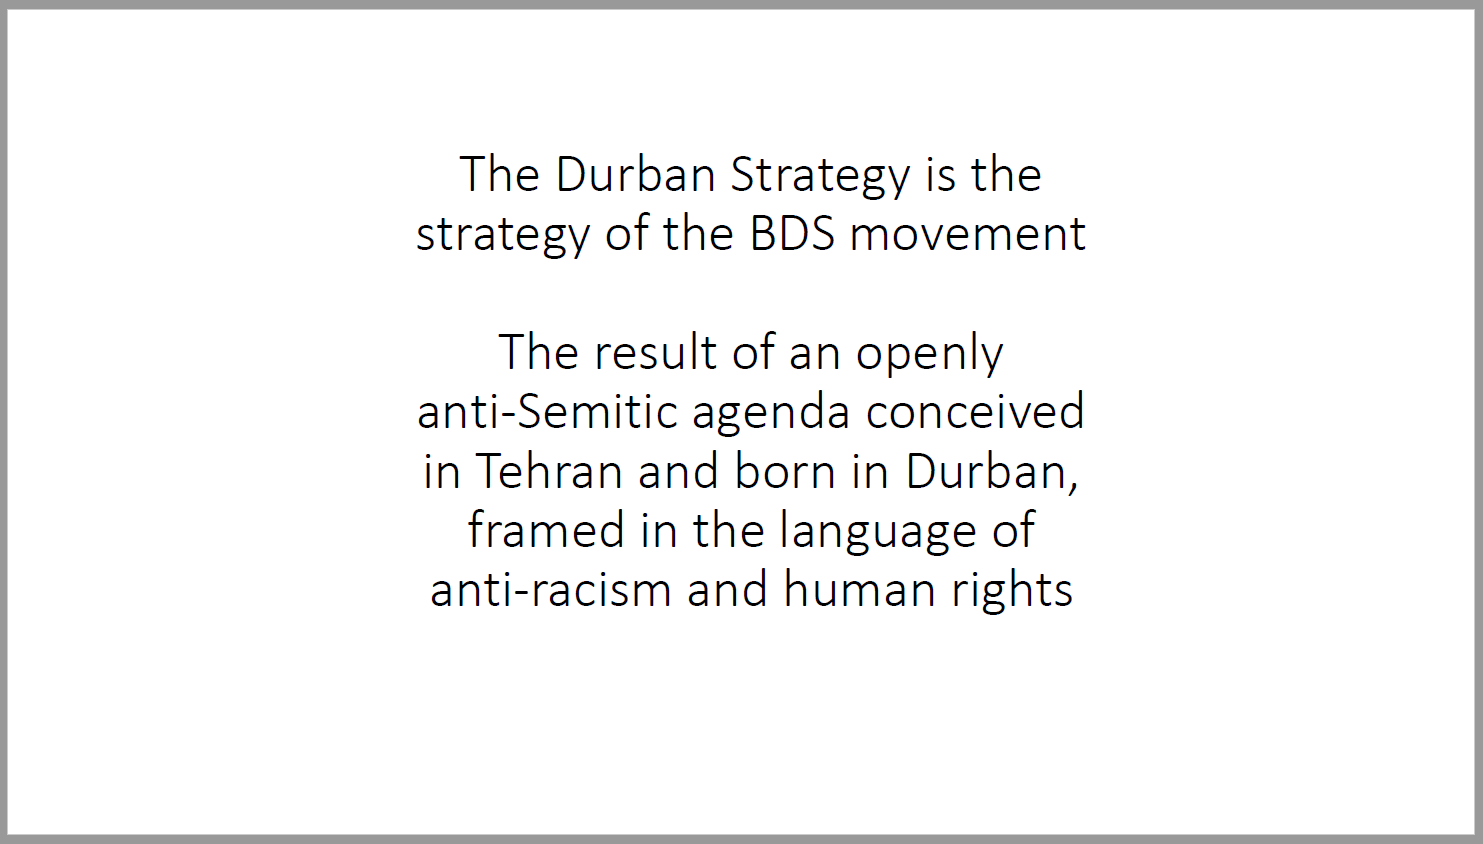 bds-history-durban-boycott-call-is-bds